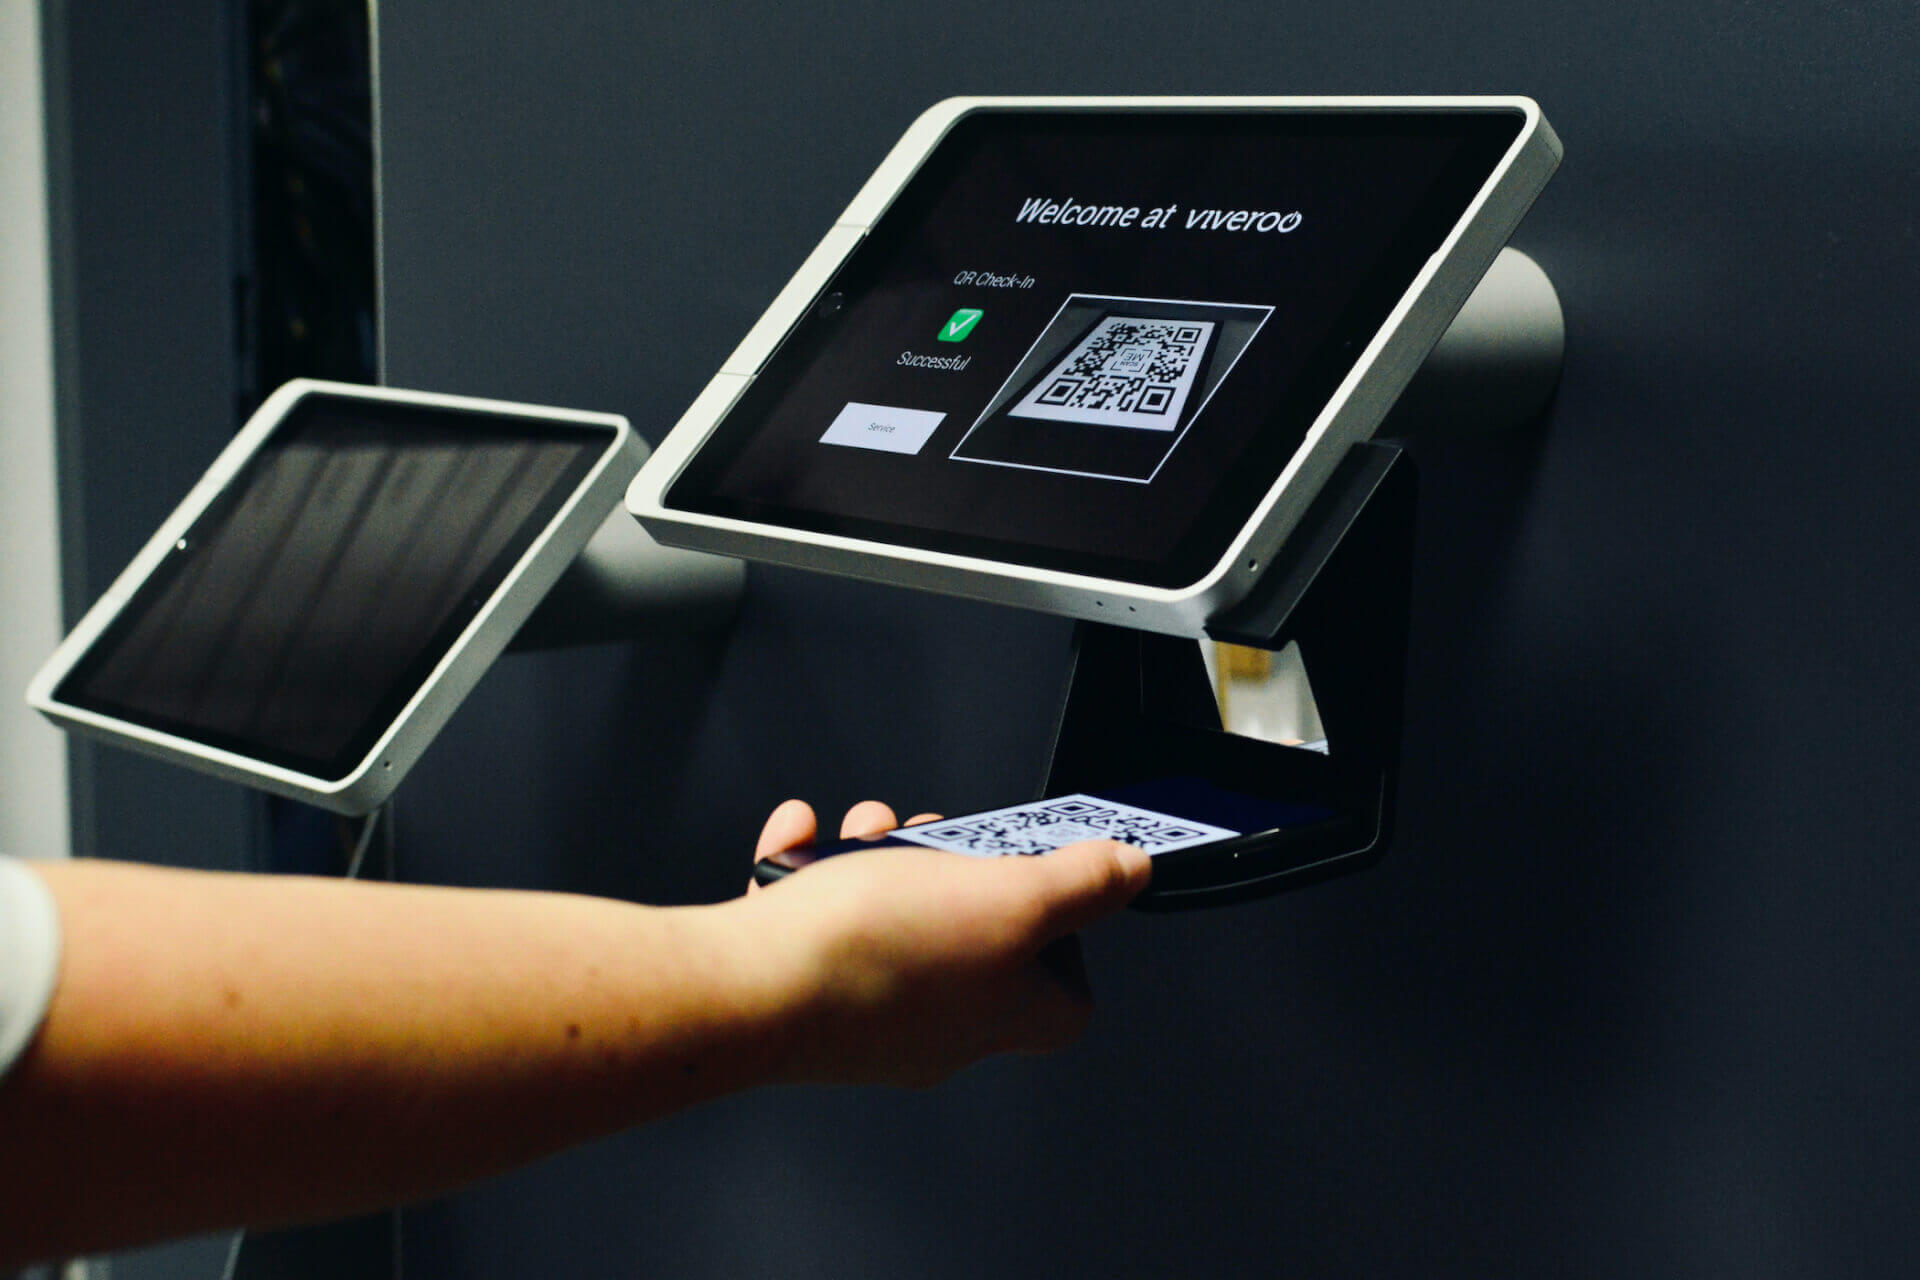 viveroo-kiosk-wall-stand-two-units-scanning-process-2